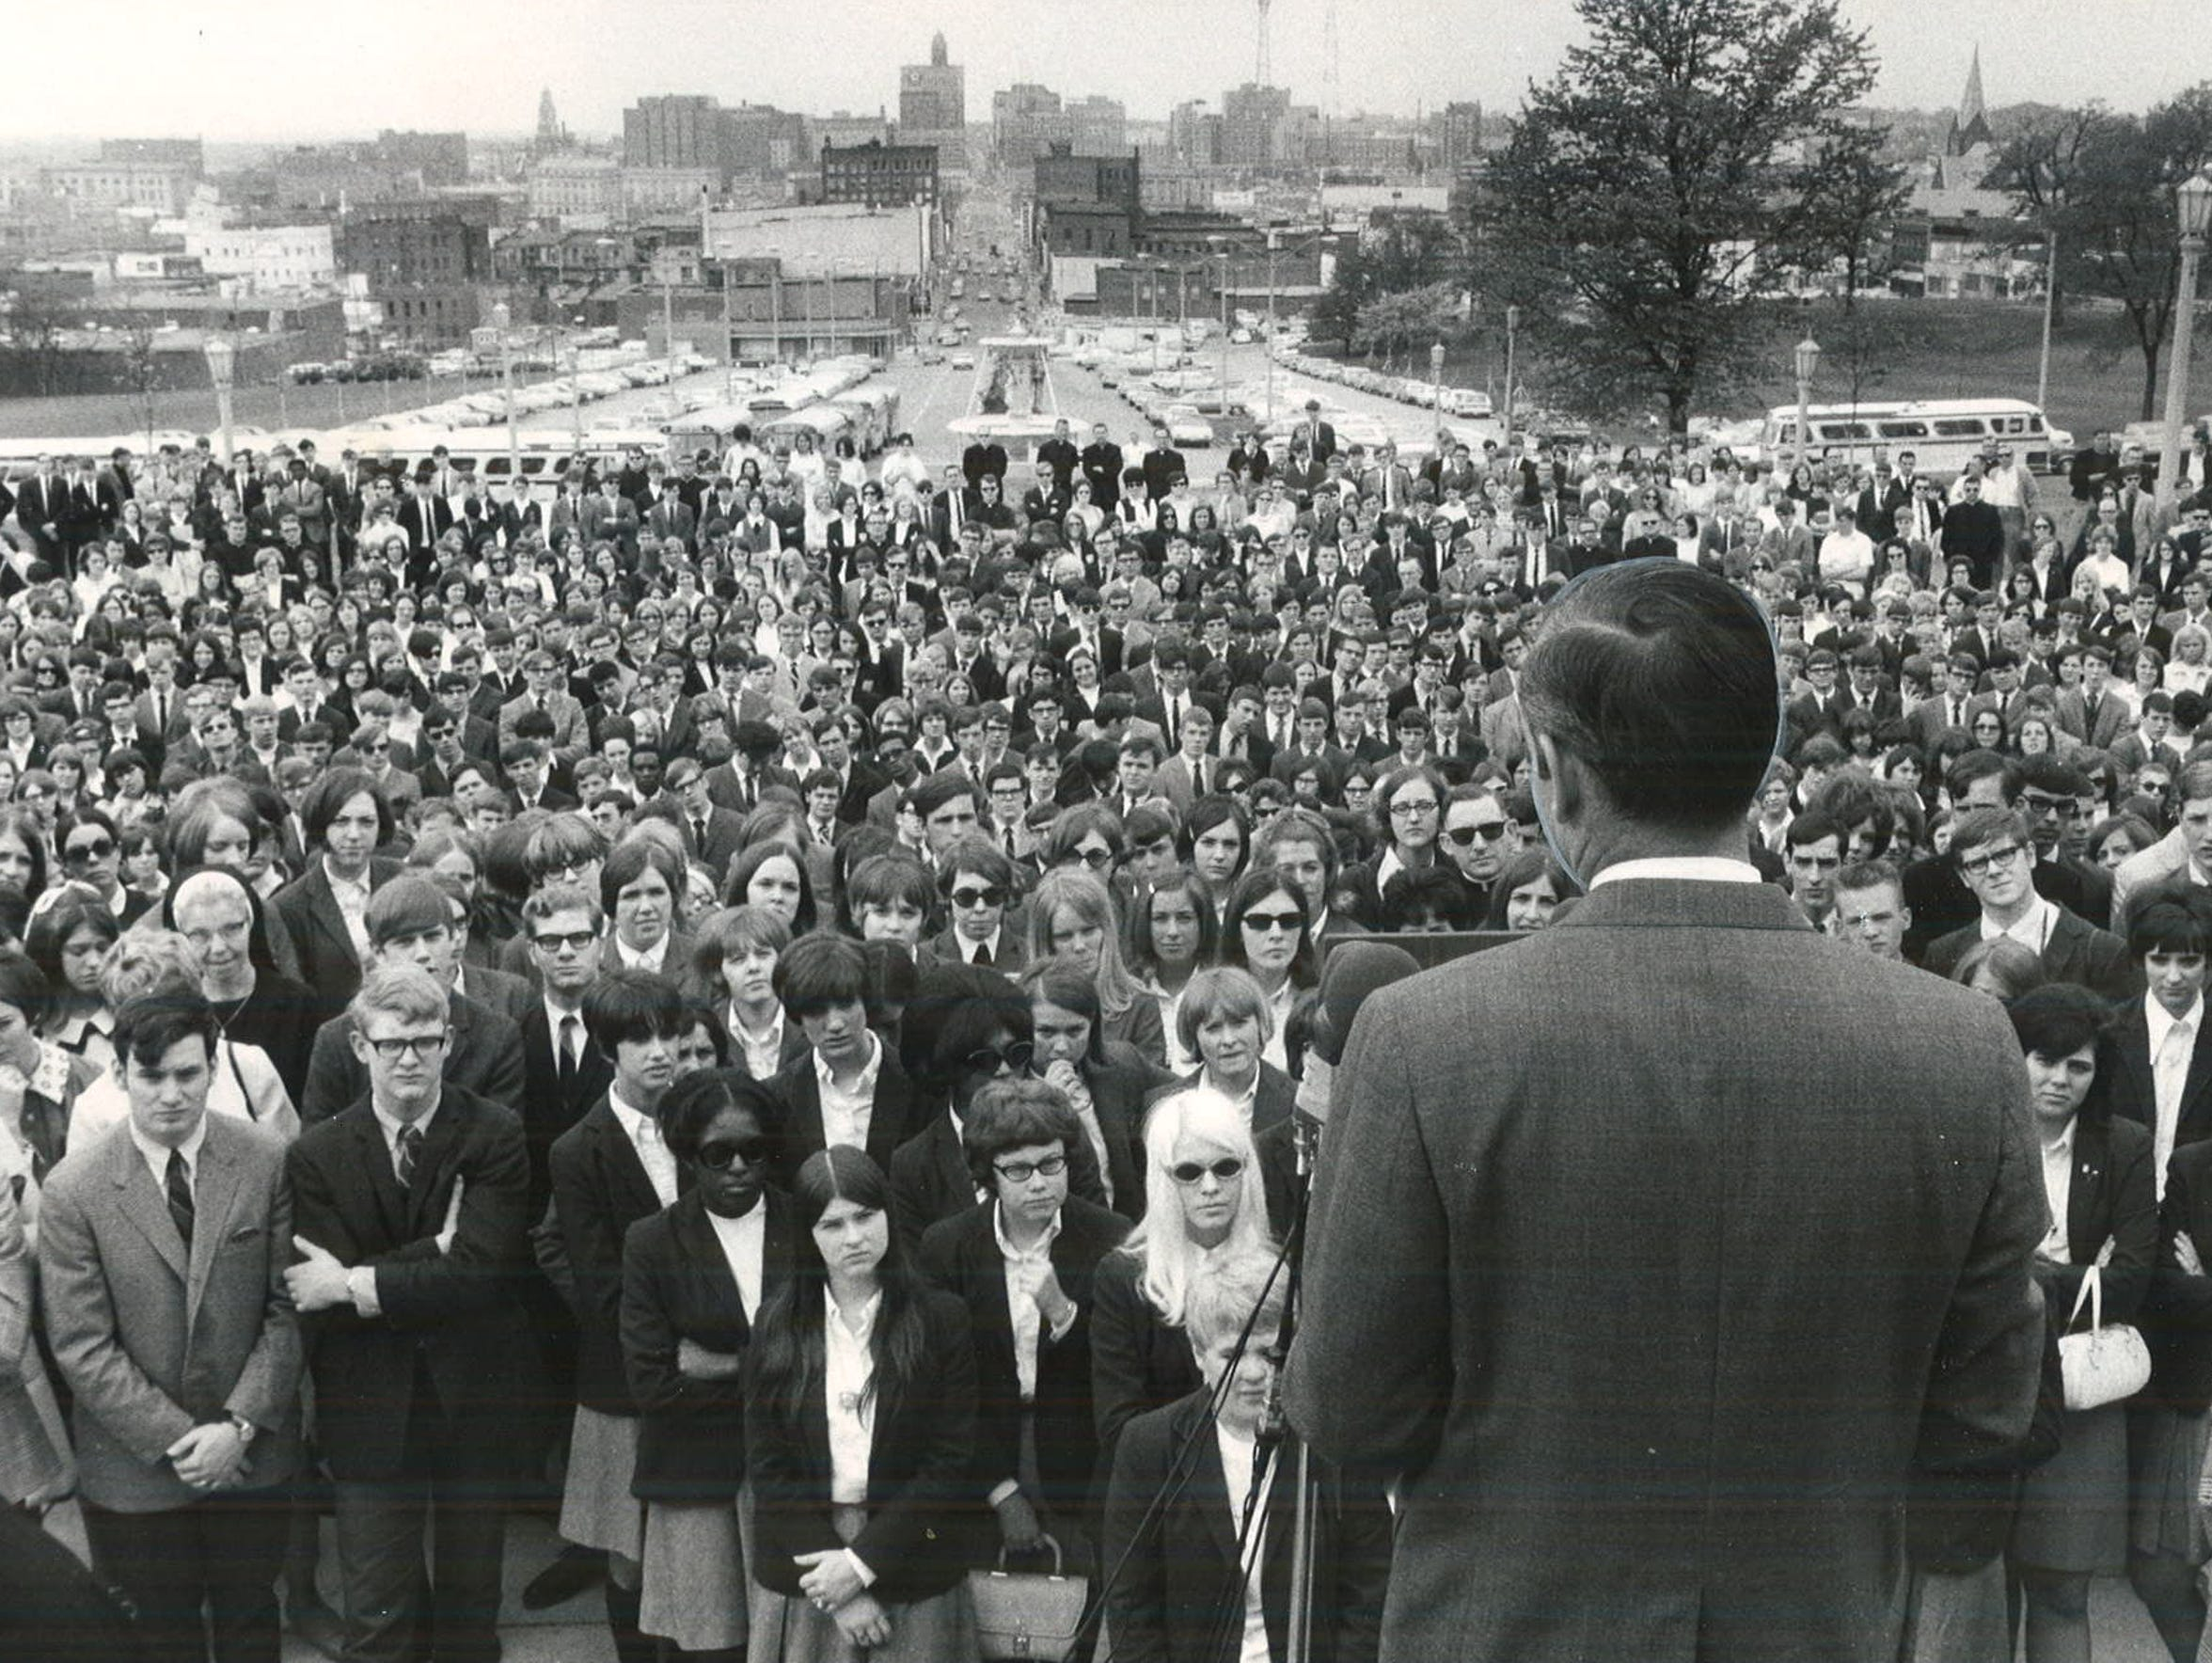 From 1969: Iowa Gov. Robert Ray addresses a large crowd